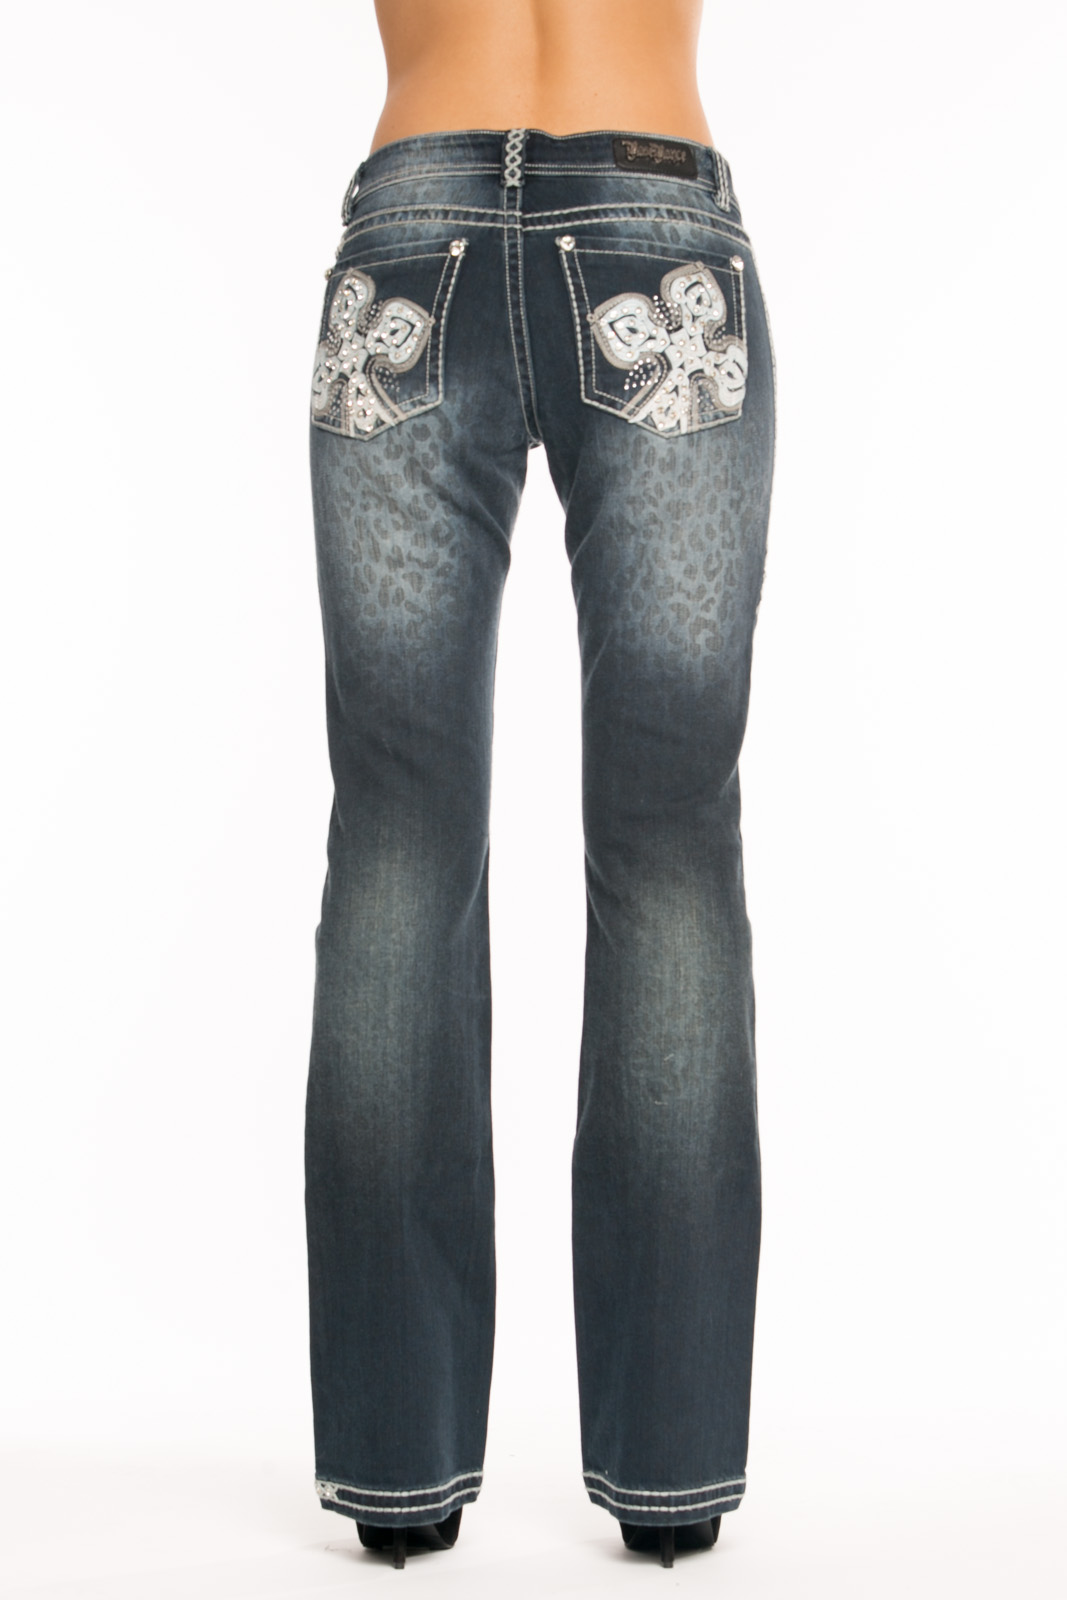 View all new ladies jeans